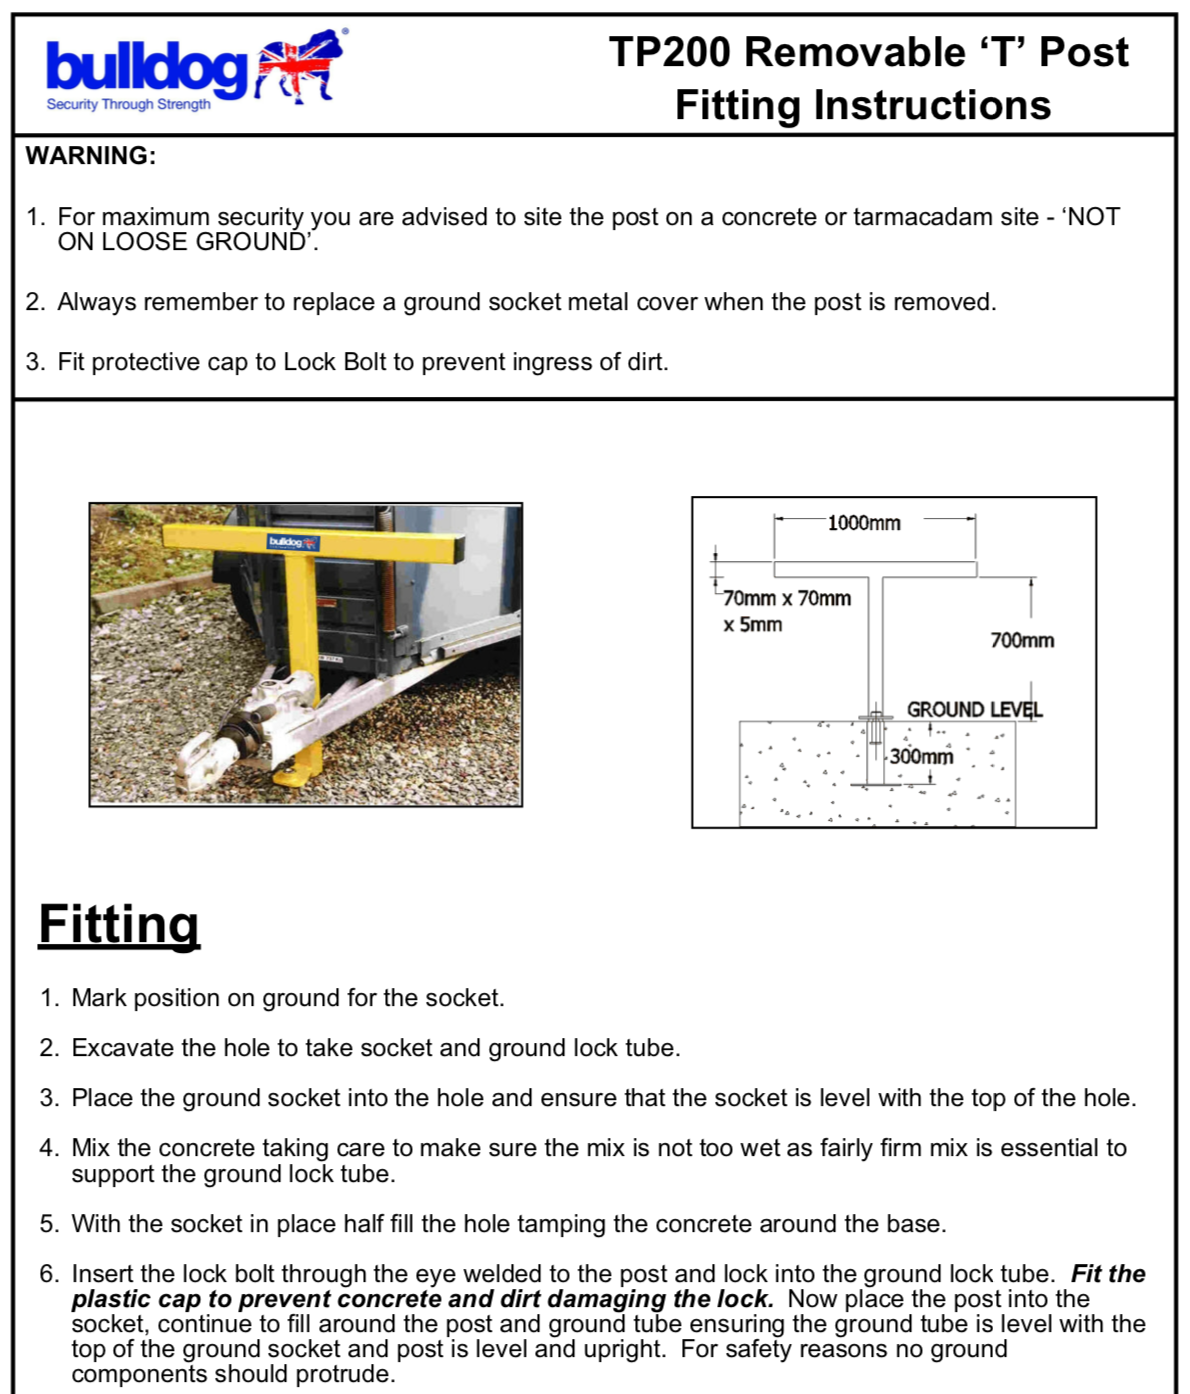 New Bulldog Anti-Theft Tp200 T Post For Securing Trailers Between The A Frame ✅ 3